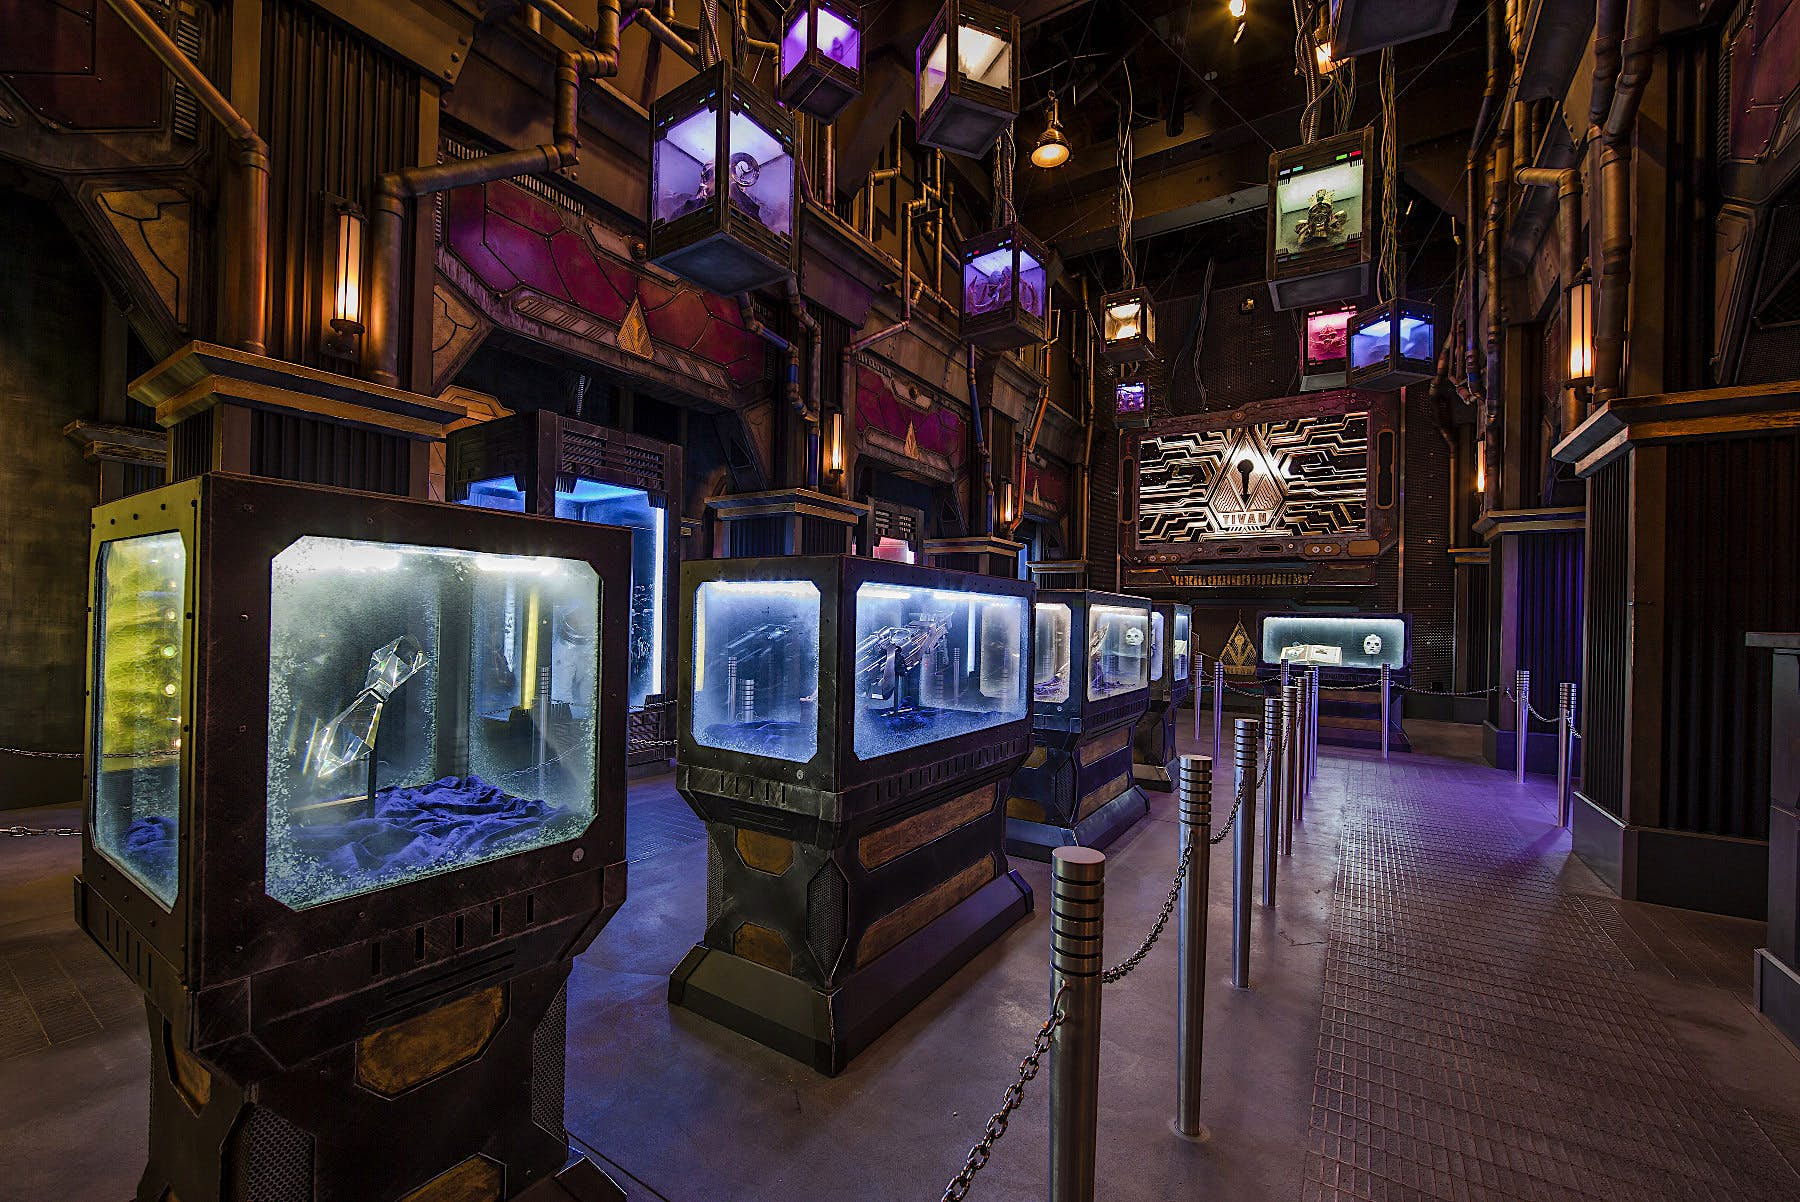 Artifacts from the movie Guardians of the Galaxy are stored behind glass cases in a set which resembles the film